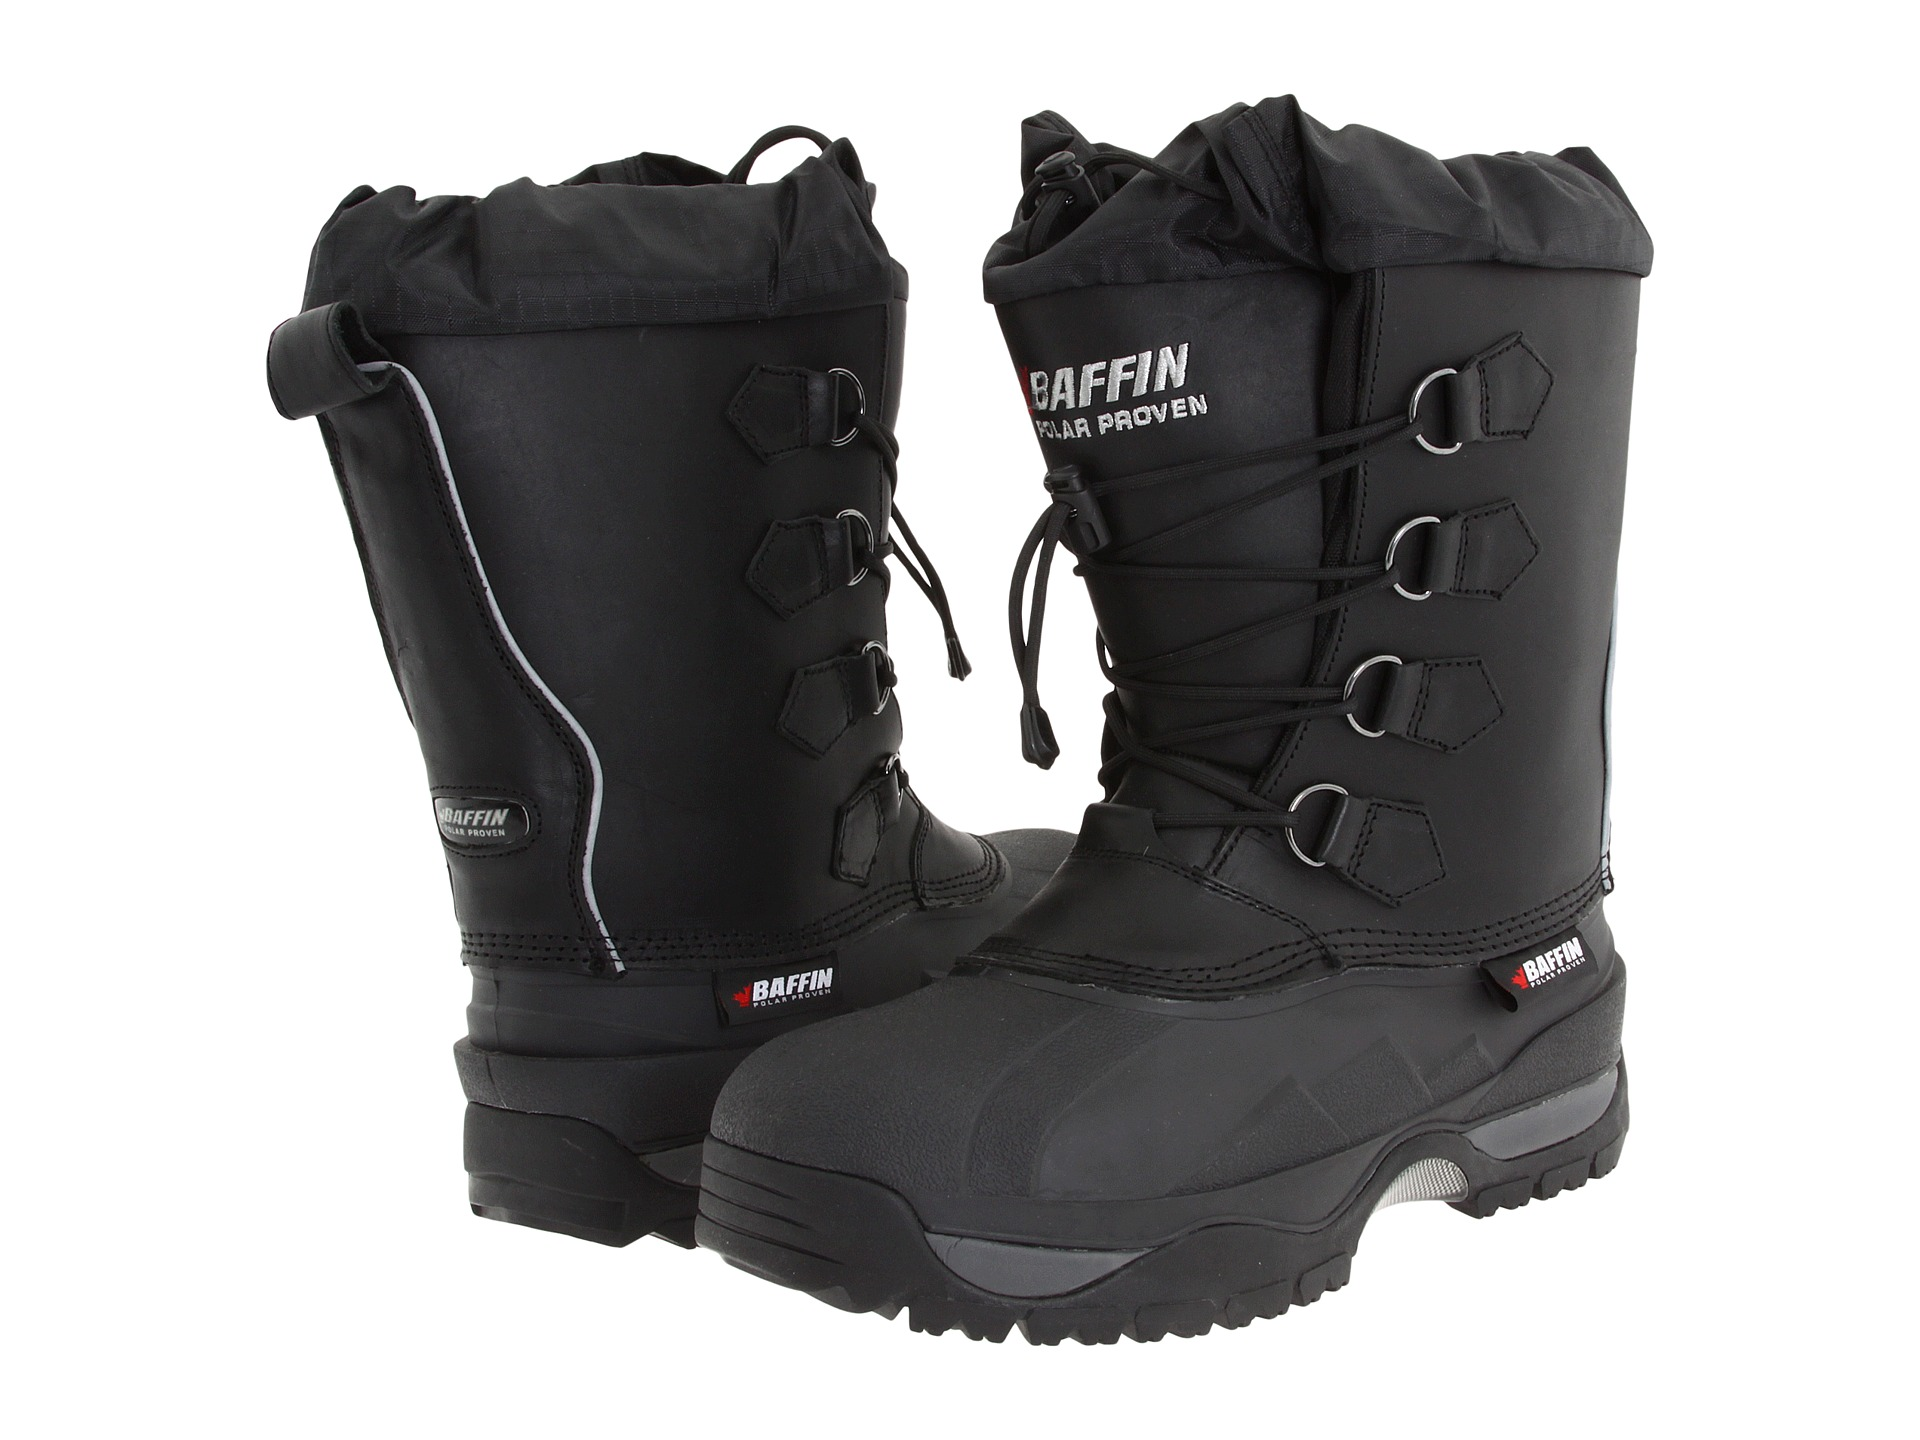 Baffin Winter Boots Clearance   Santa Barbara Institute for ...